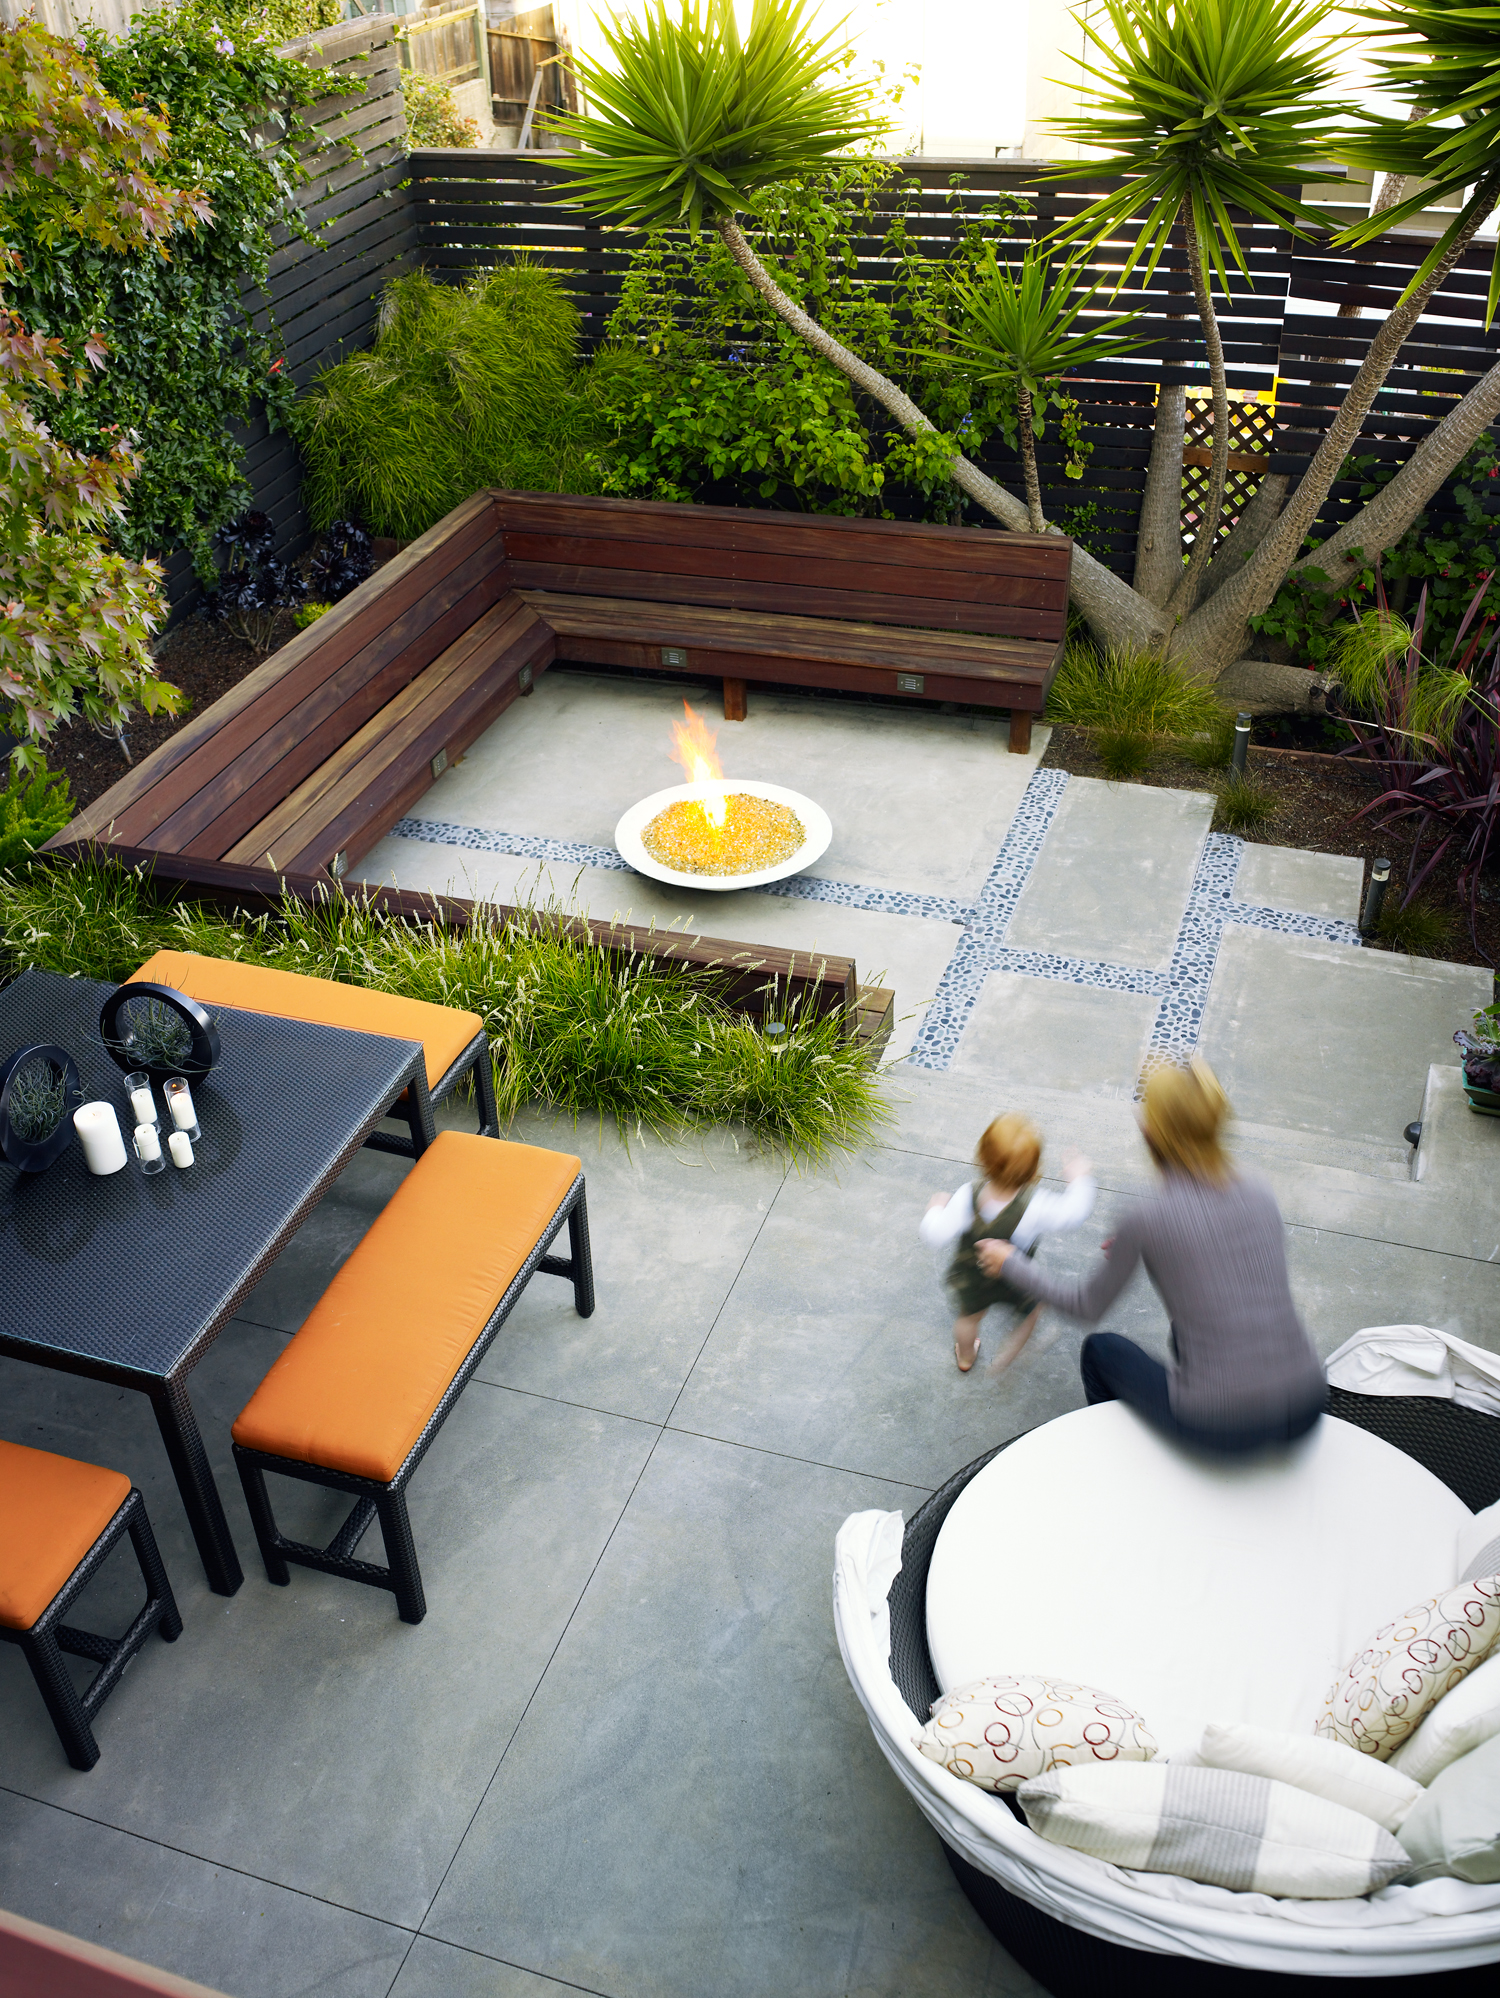 Is your yard or garden small on space? Get big ideas for ... on Small Backyard Patio Designs id=36560